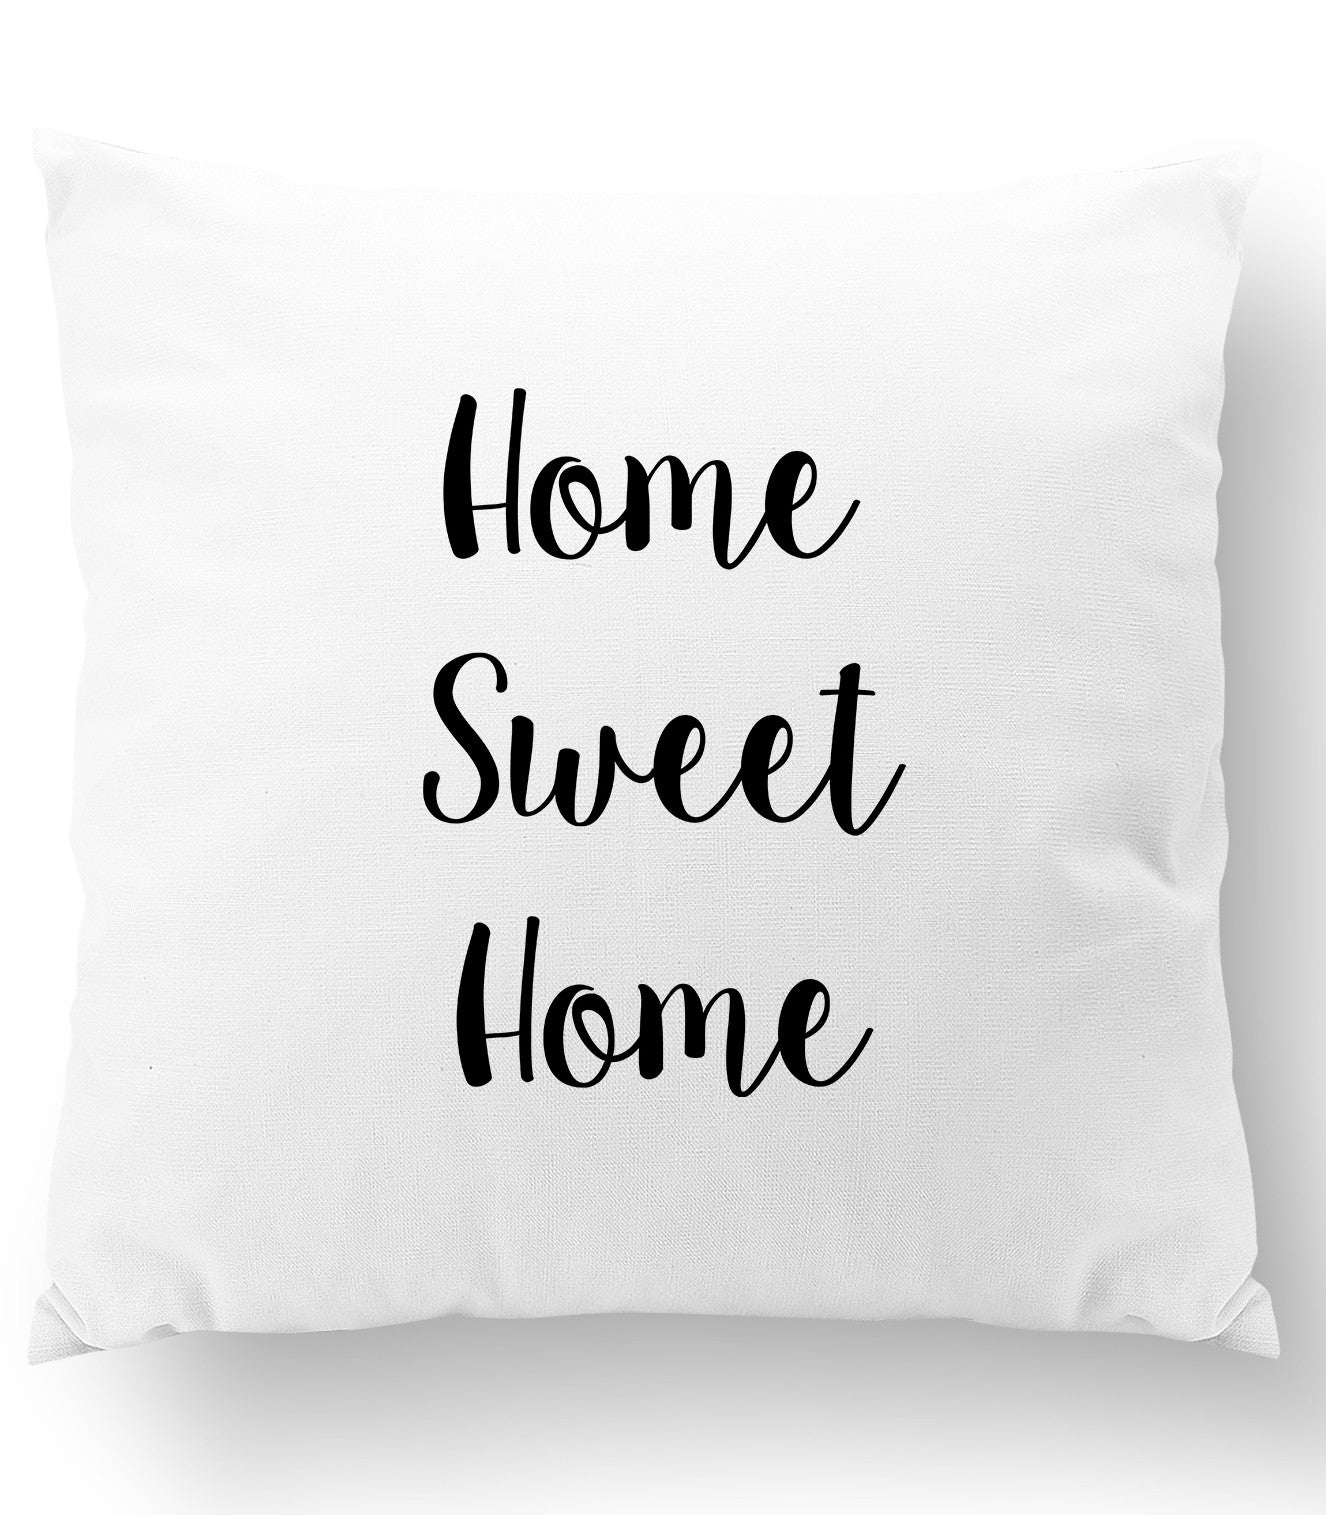 Home Sweet Home Throw Pillow Cover The Top Knot Boutique